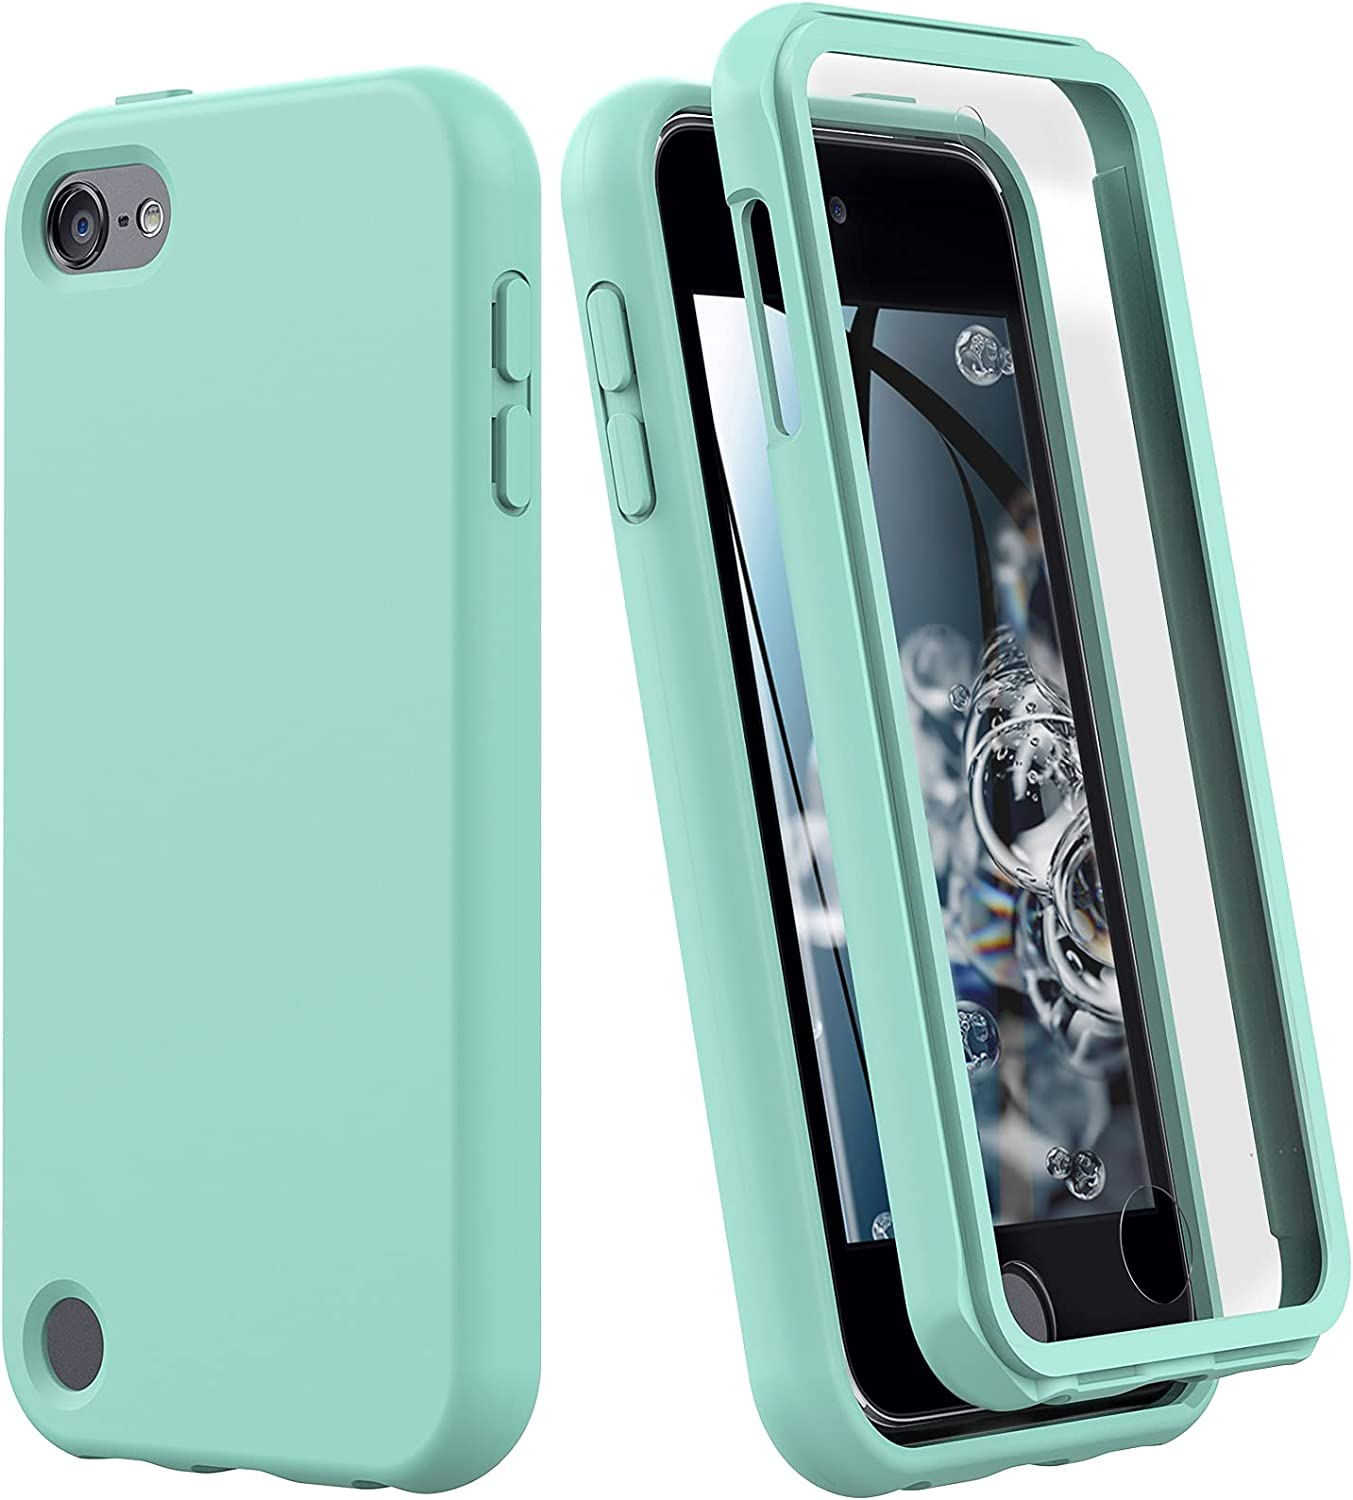 iPod Touch 7 Case, iPod Touch 6 Case, Shockproof Silicone Case [with Built in Screen Protector] Full Body Heavy Duty Rugged Defender Cover for Apple iPod Touch 7th/6th/5th Generation (Mint Green)